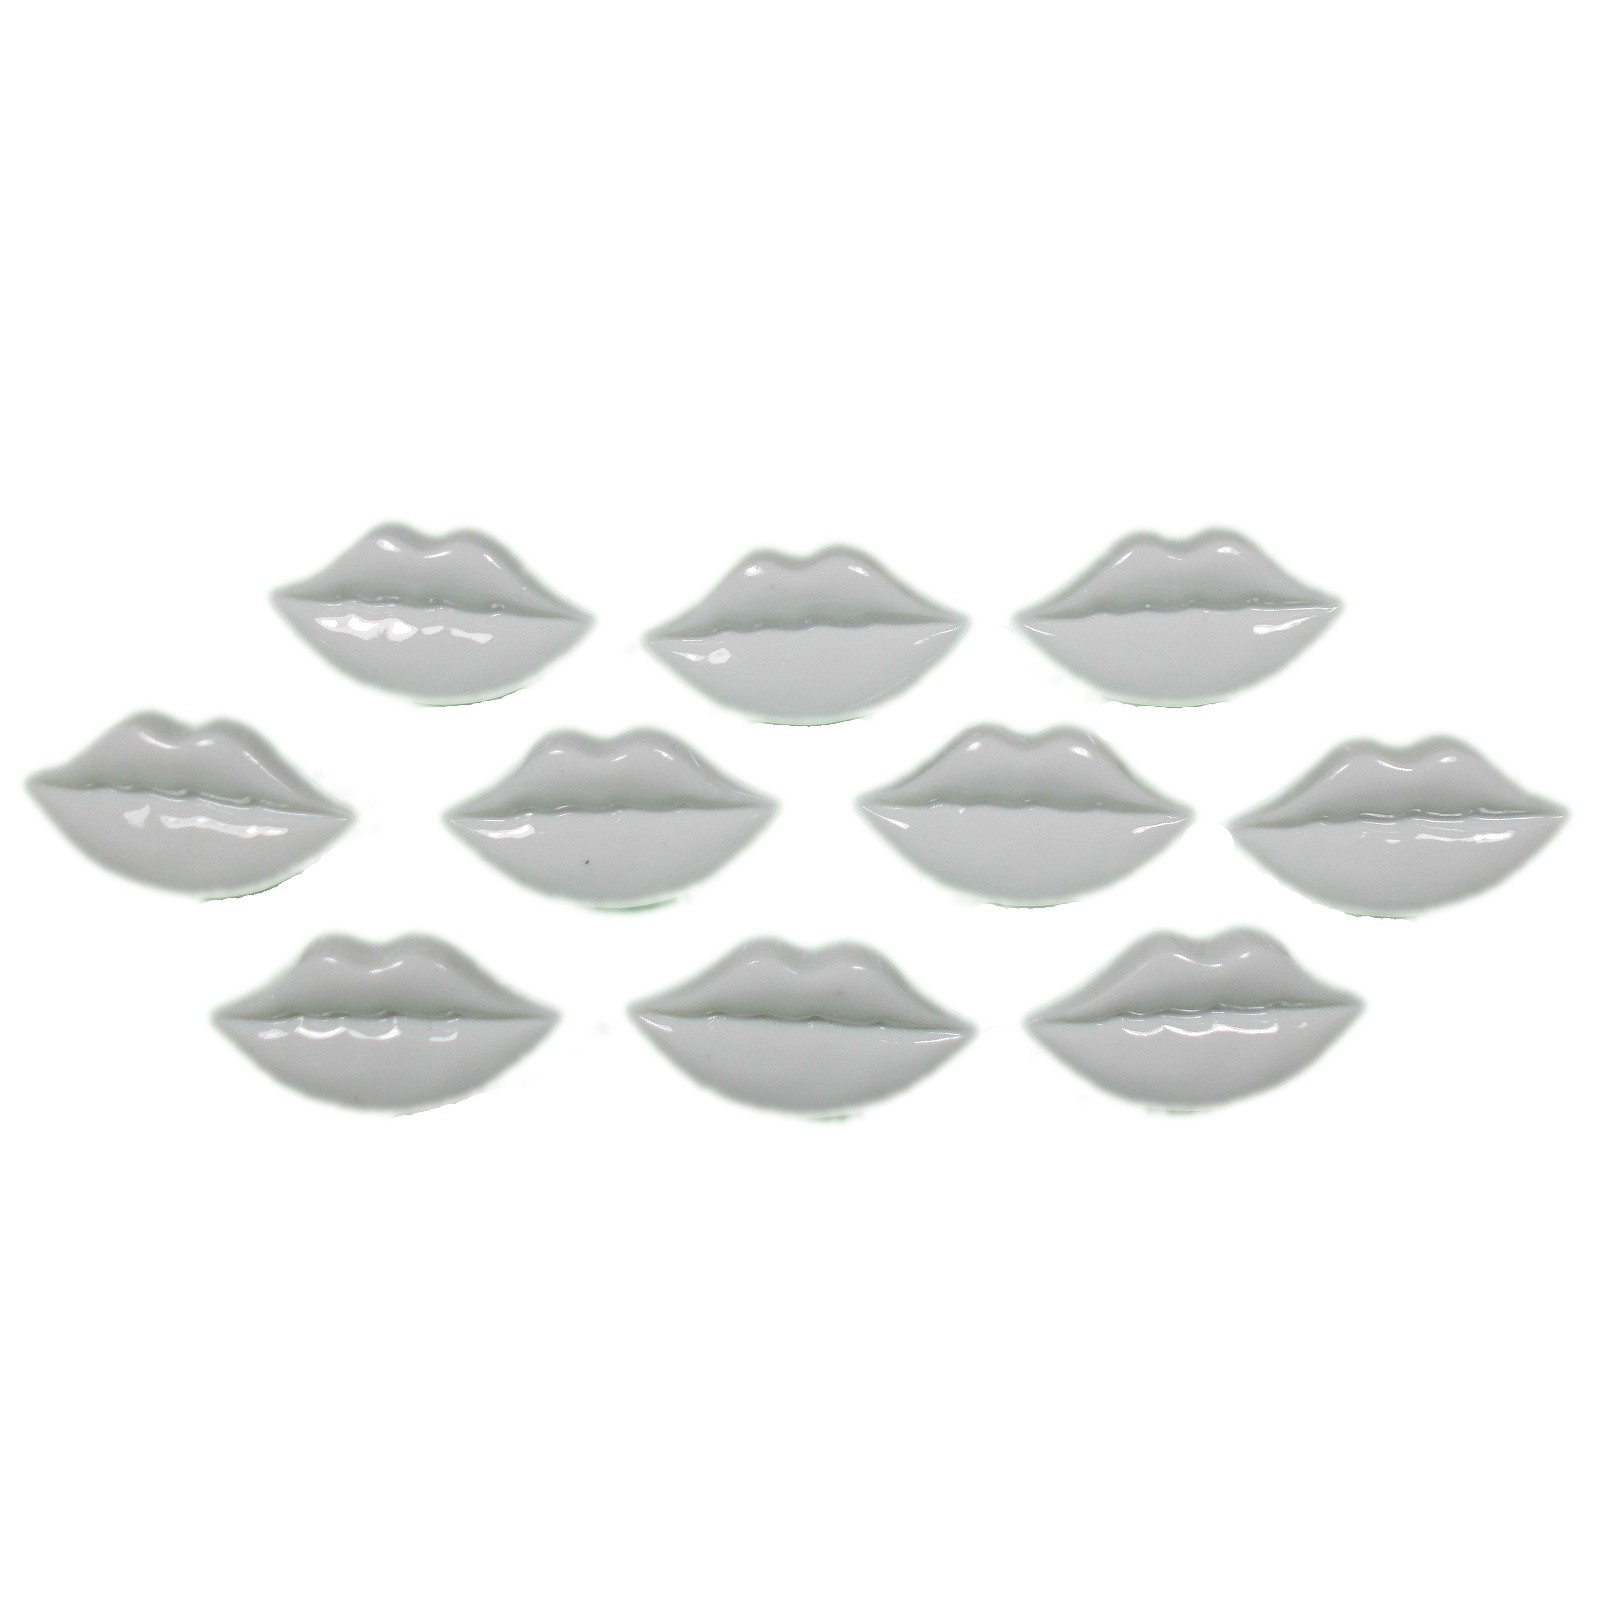 Lips Shape Plastic Kitsch Buttons 25mm White Pack of 10